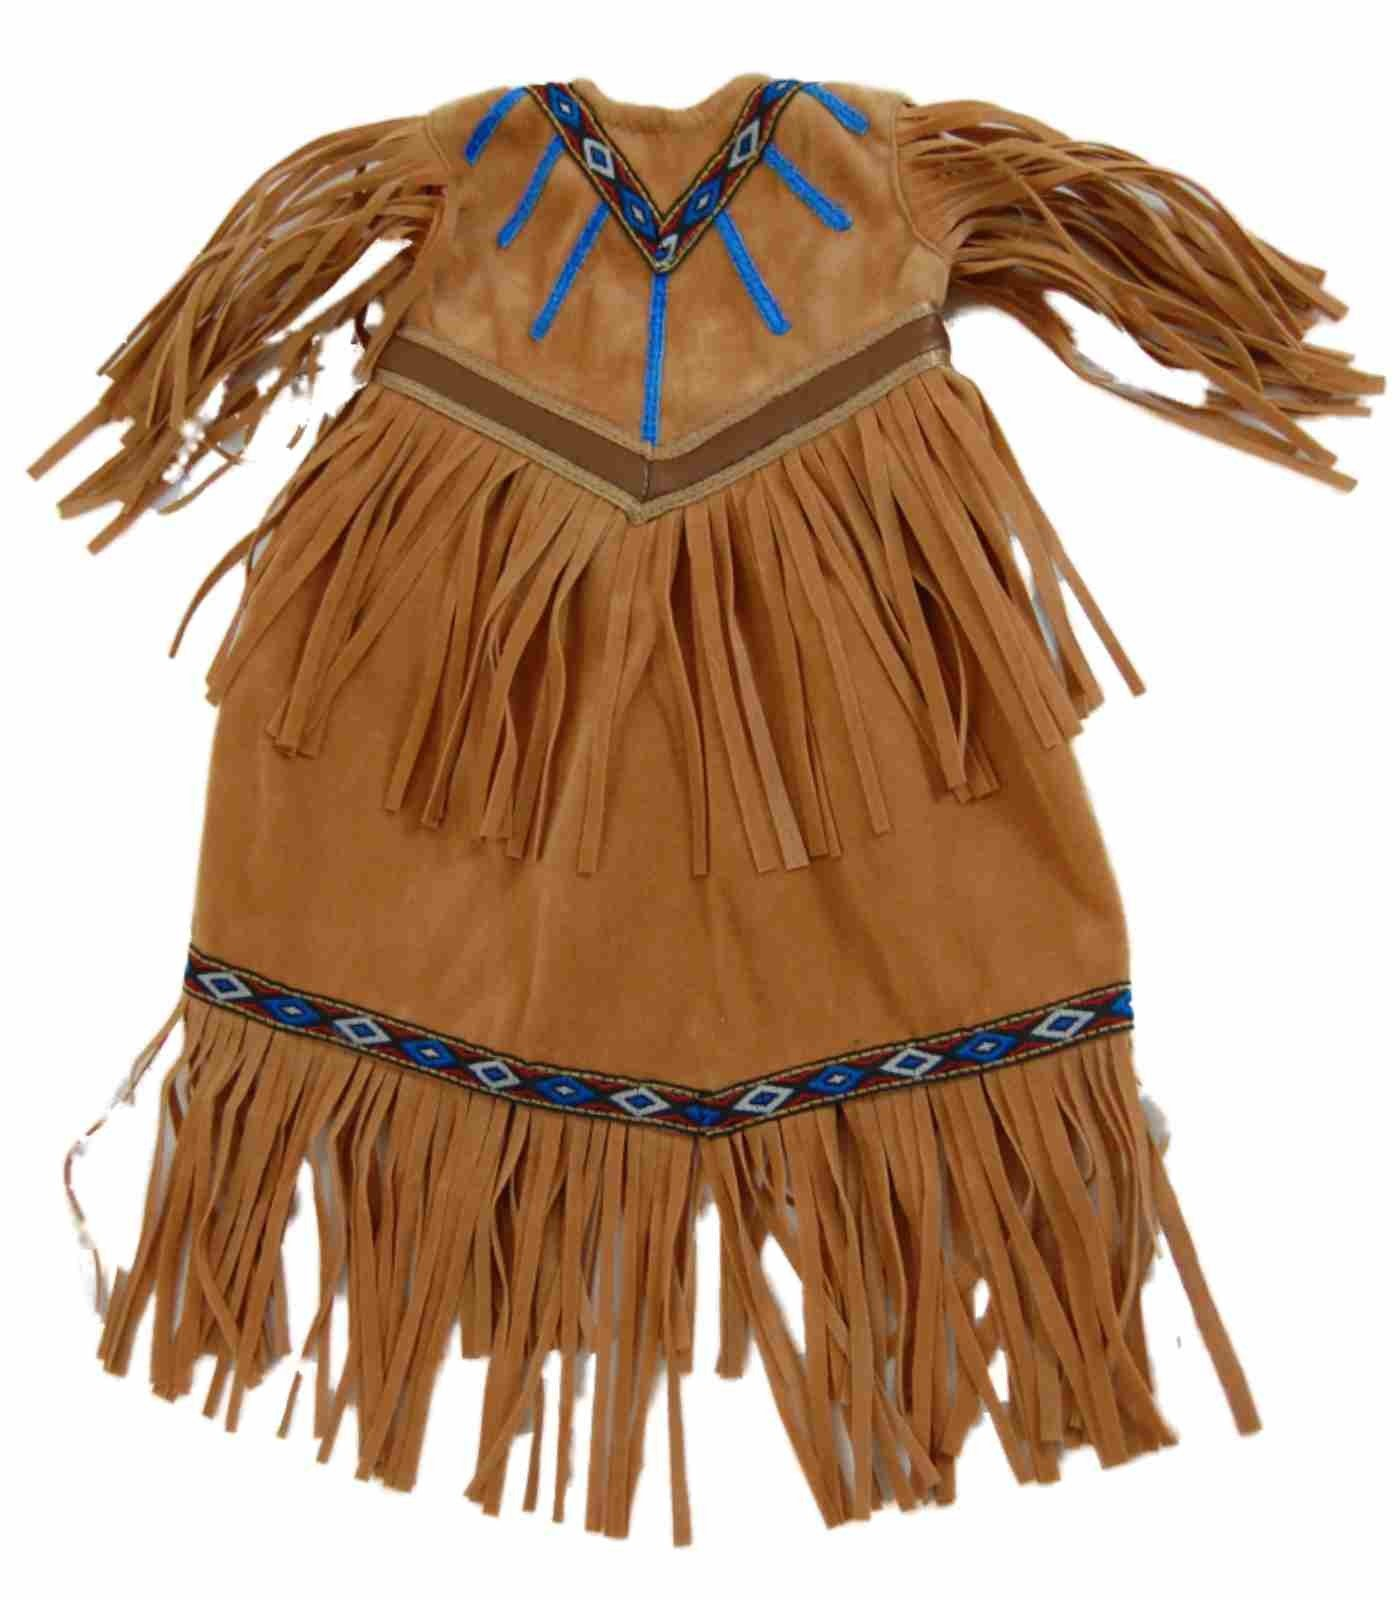 Native American Outfit For 18'' Dolls & American Girl¨